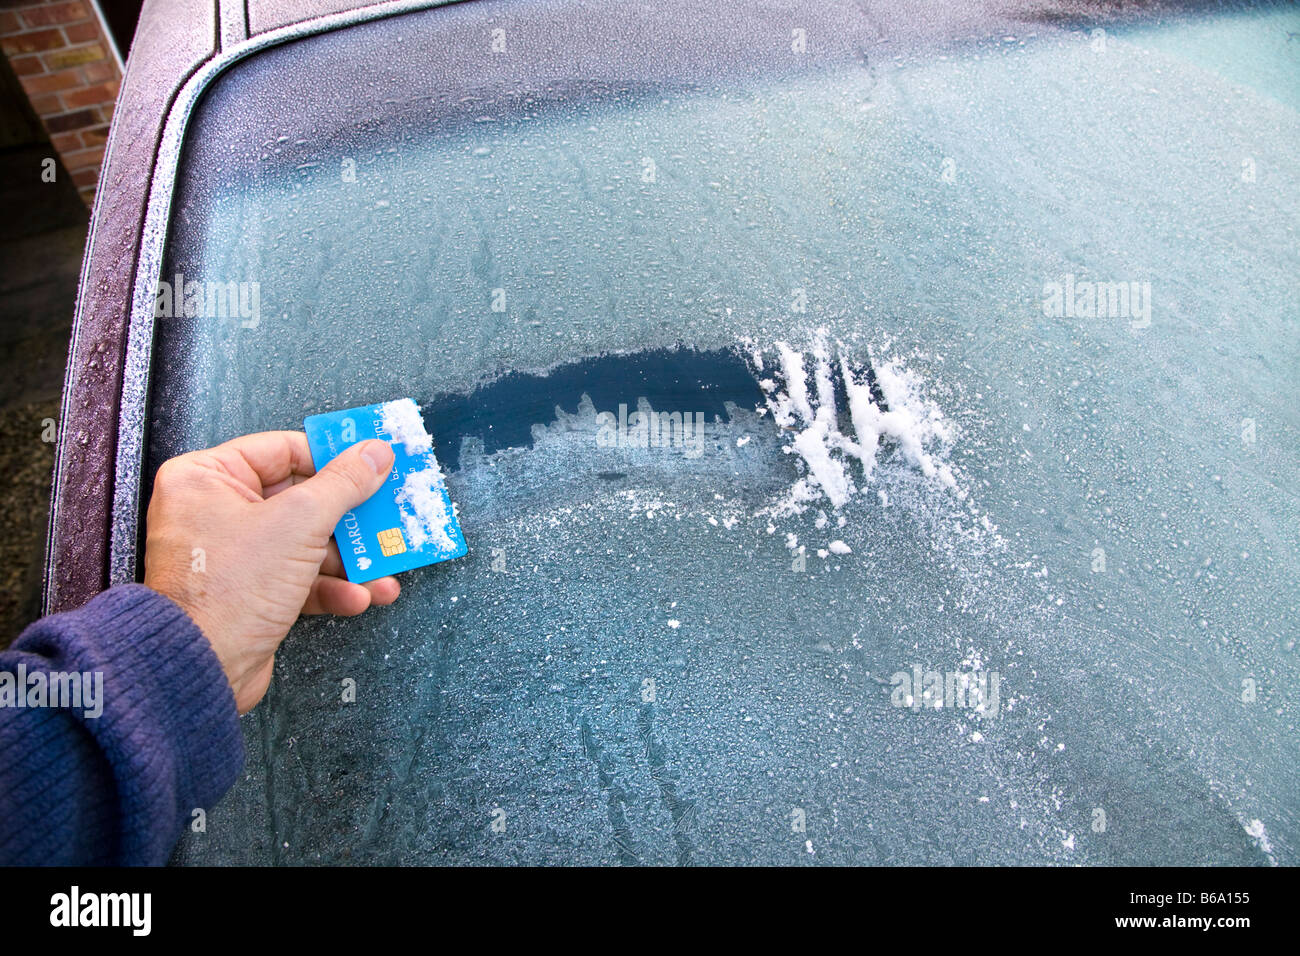 DURING A CREDIT FREEZE AND FREEZING WEATHER, AN ALTERNATIVE USE FOR